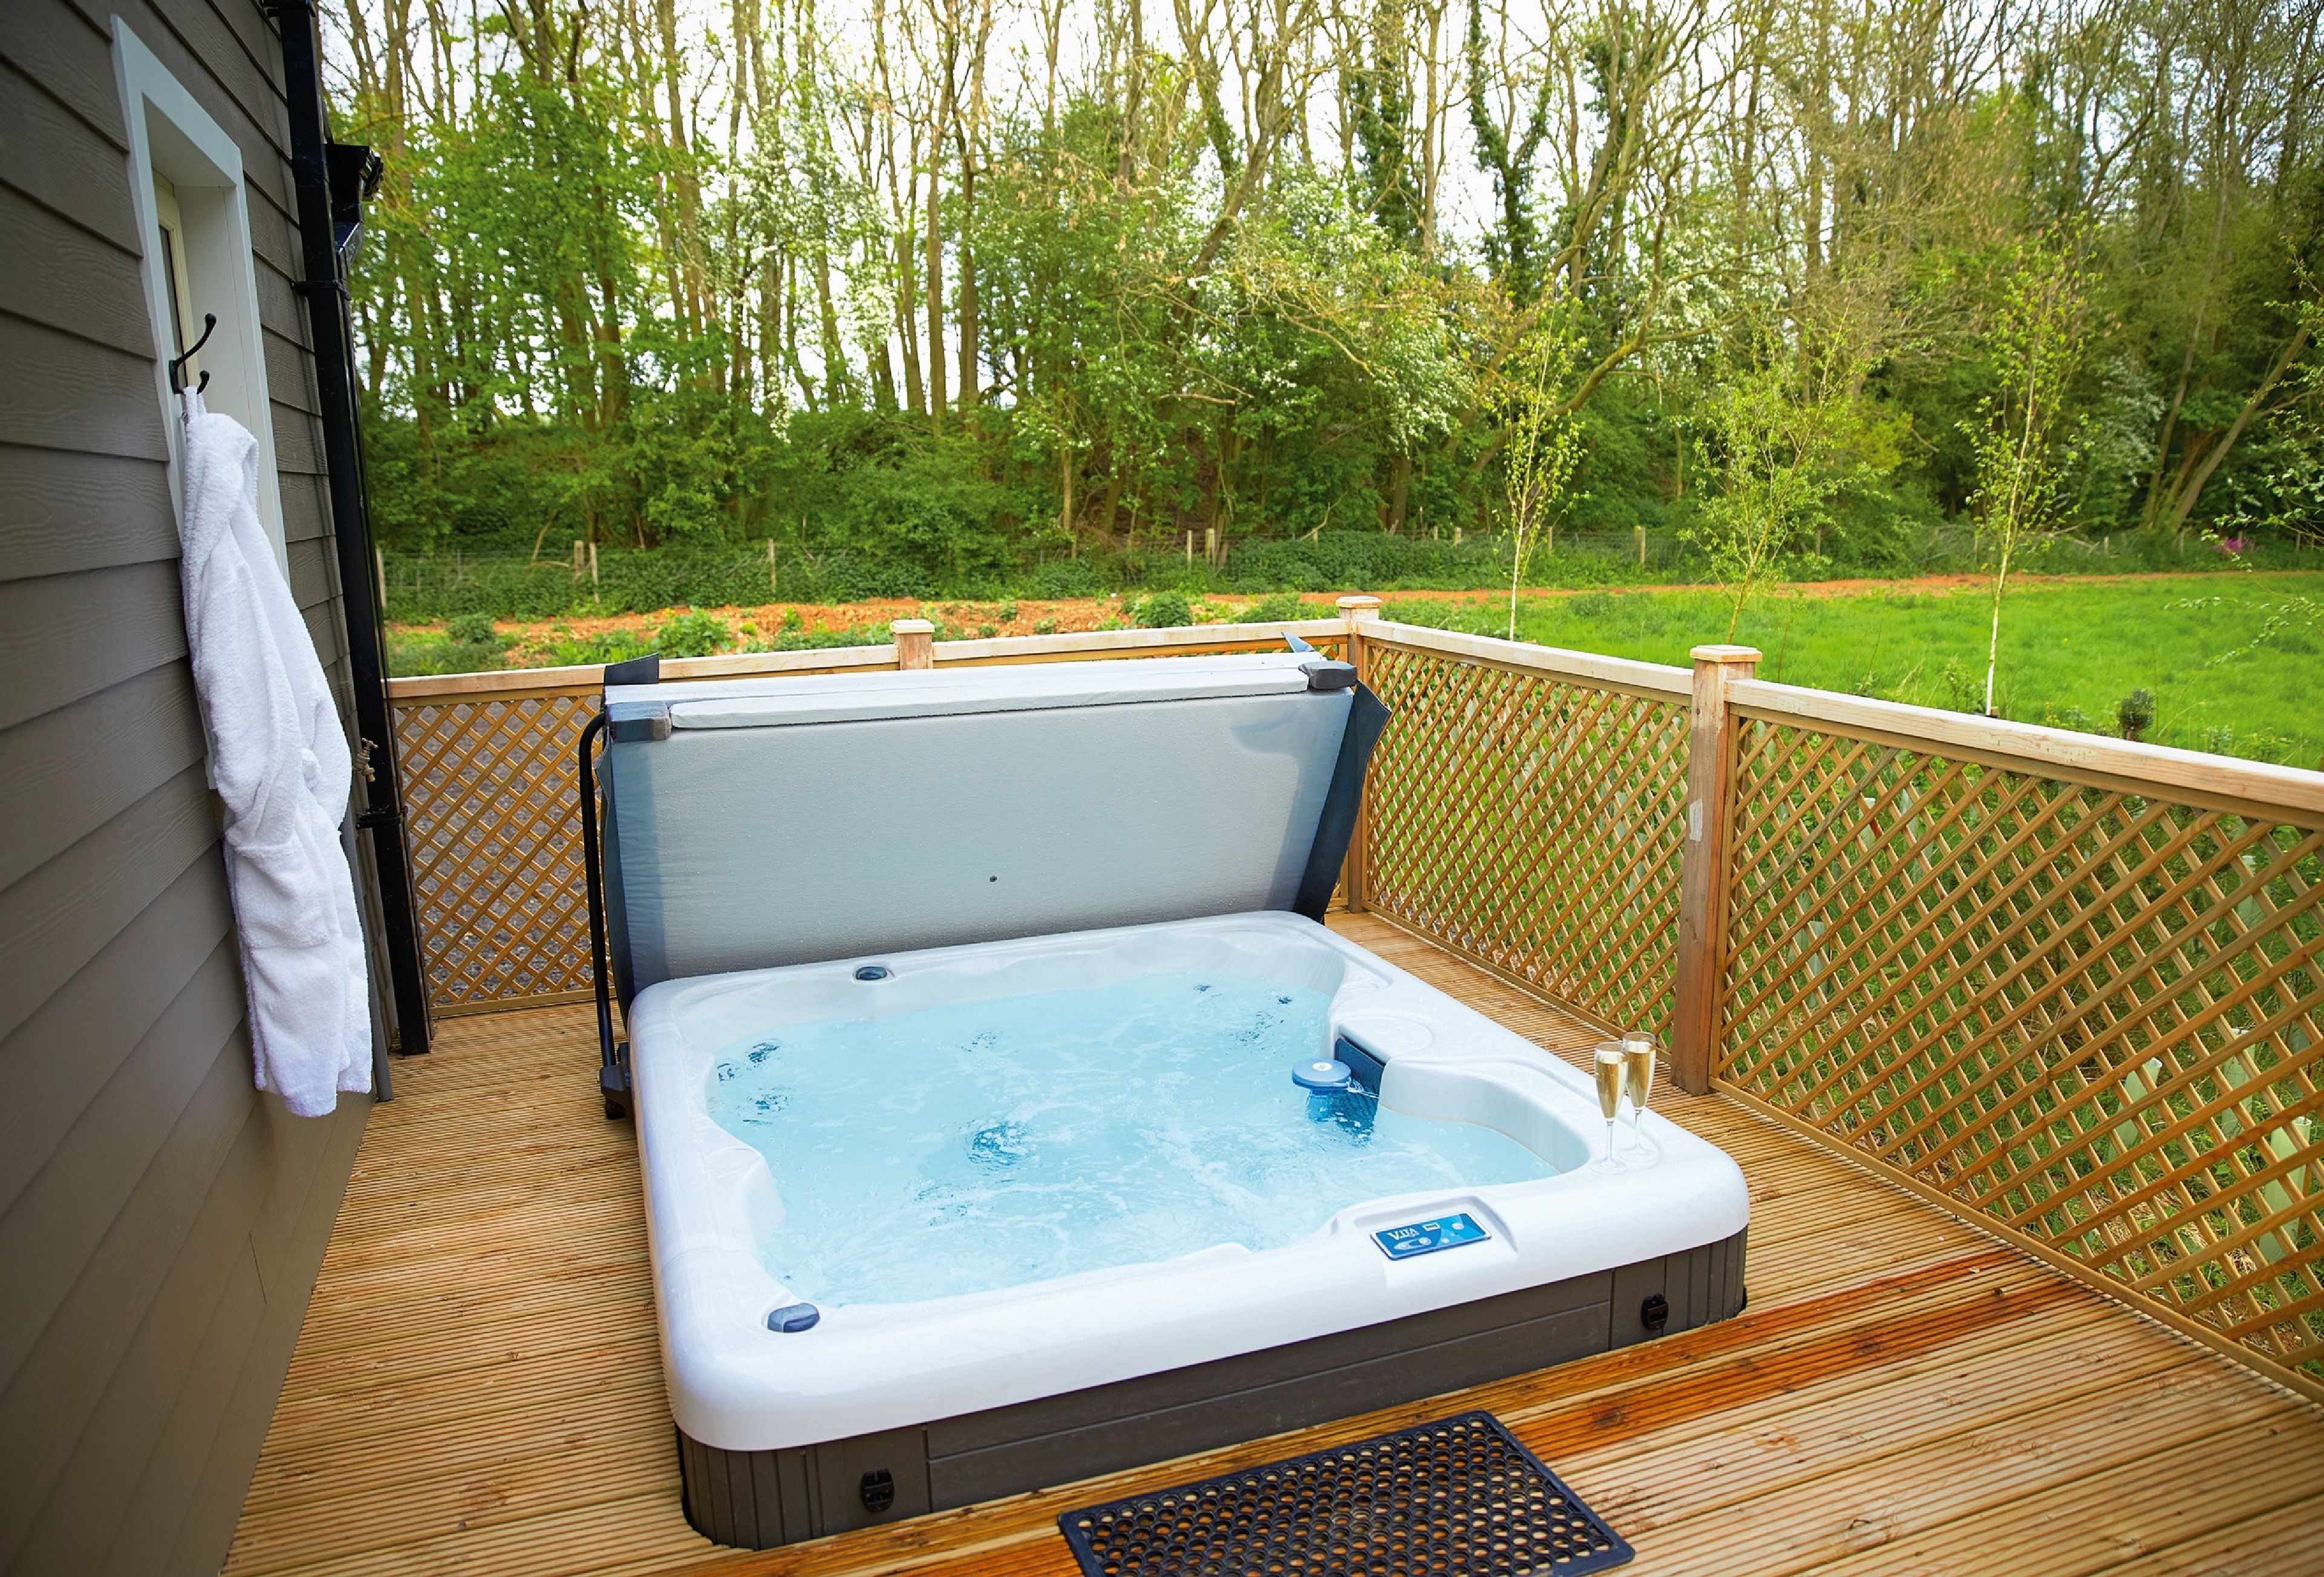 productimage ycoxqsjvmrkw k cheap bathtub bath prices factory china bathtubs enclosed indoor hot independent tub